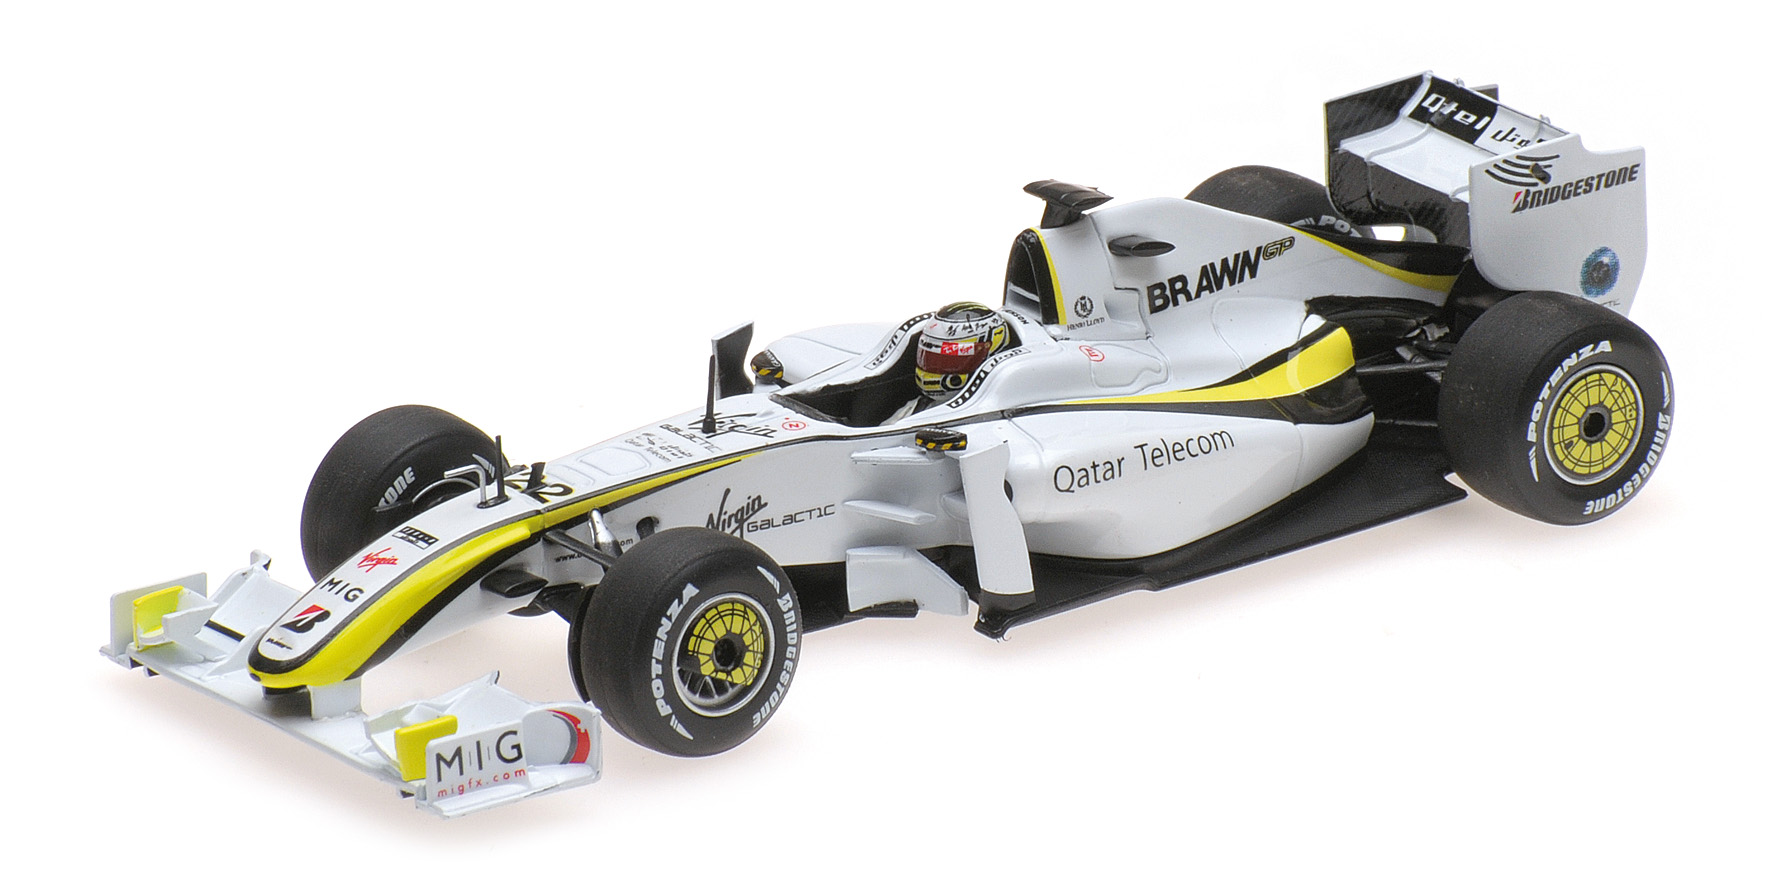 Fashion Style Brawn Bgp001 Jenson Button World Champion 2009 Minichamps 436090022 Minichamps